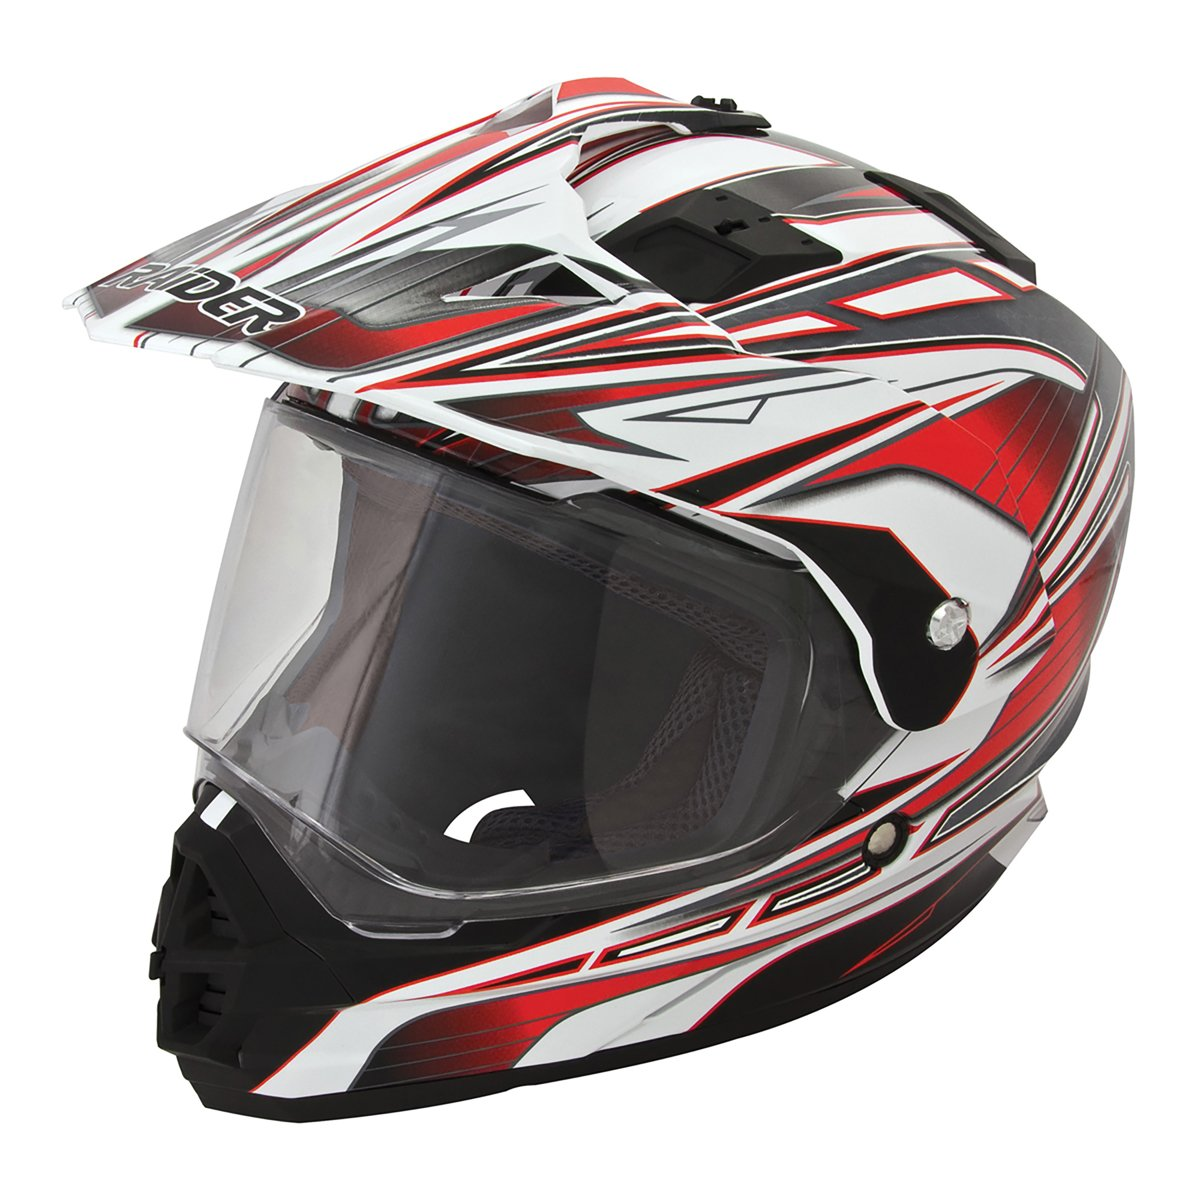 Raider Dual Sport Edge Full Face Helmet (Red, X-Large)